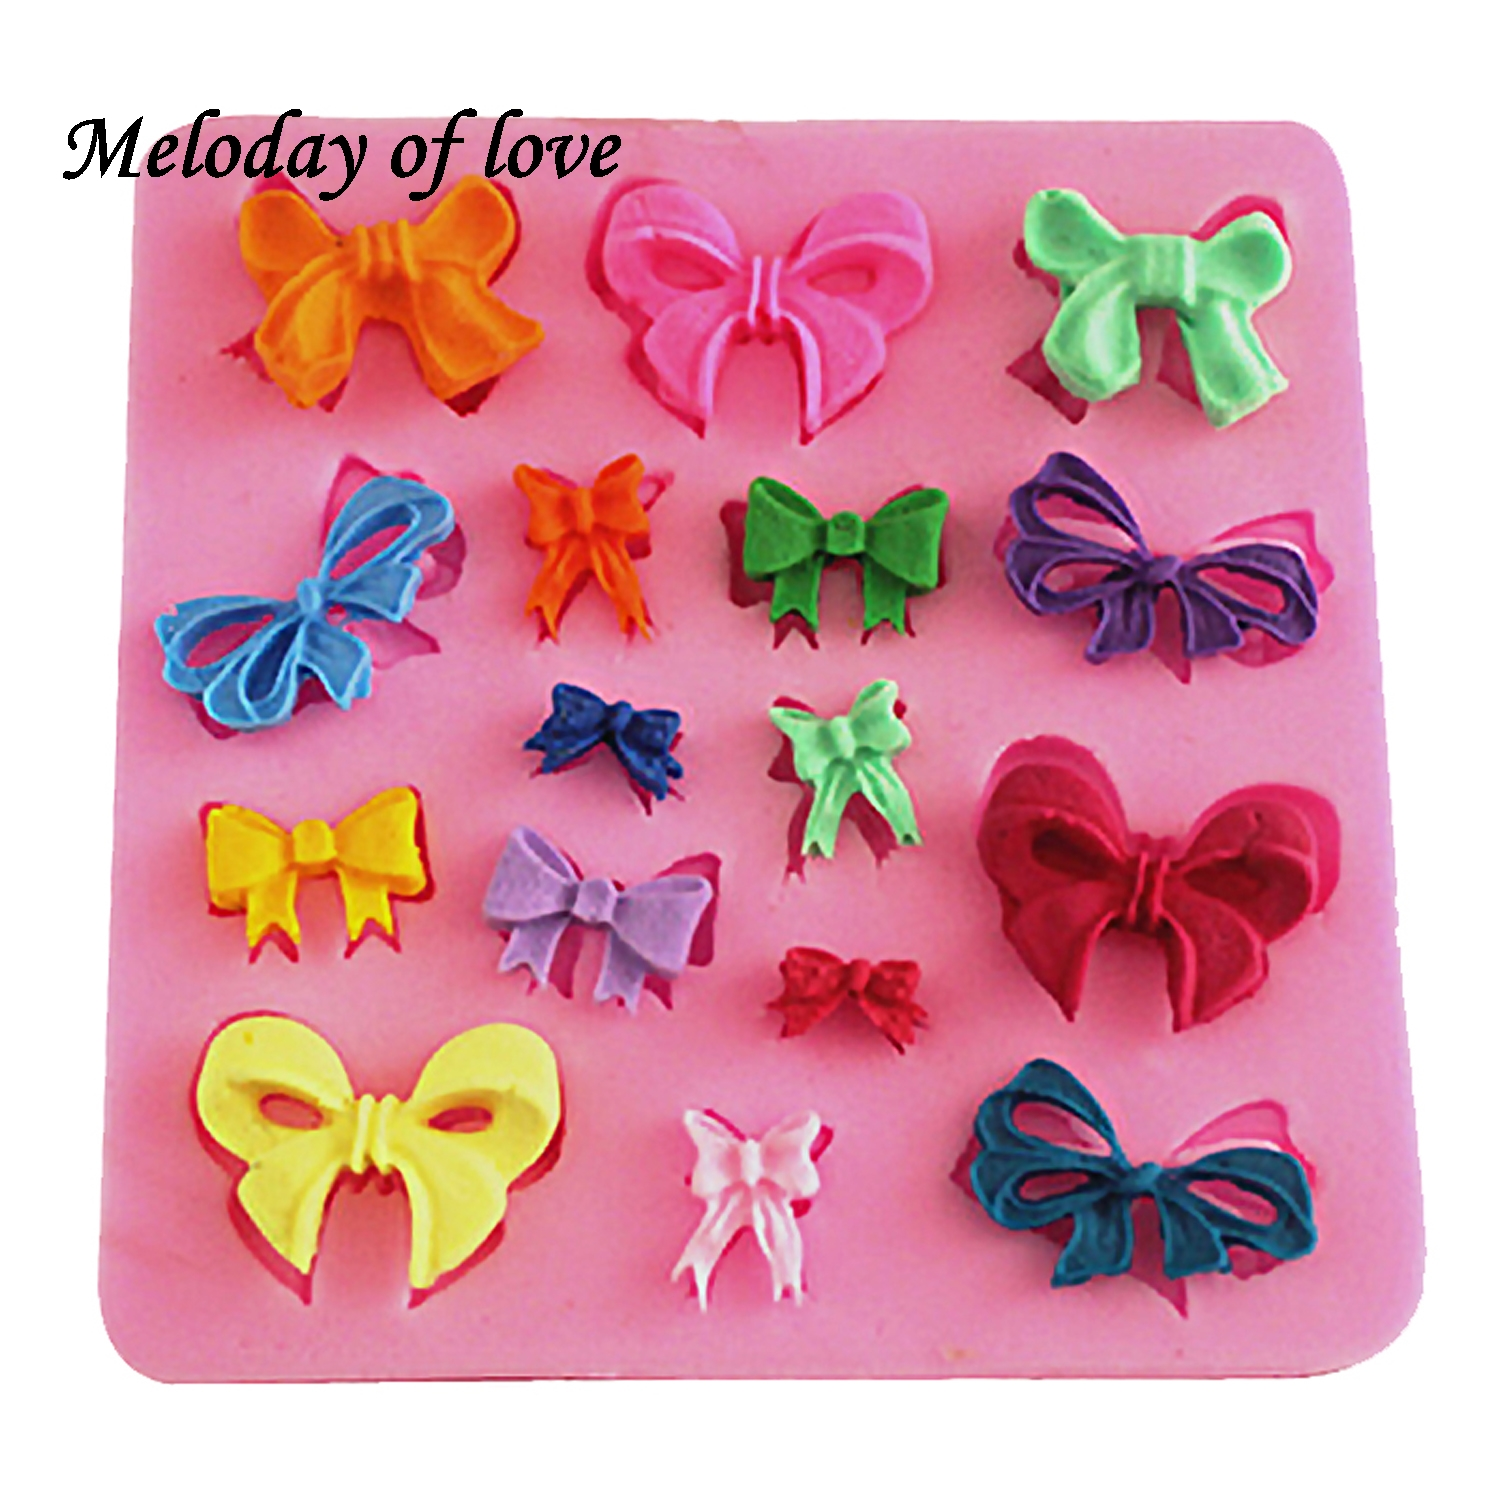 Many Mini Bows bow-knot Shape Silicone Mold 3D rosette Fondant Moulds Sugar Lace Mold Cake Brim  decorating tools T0095